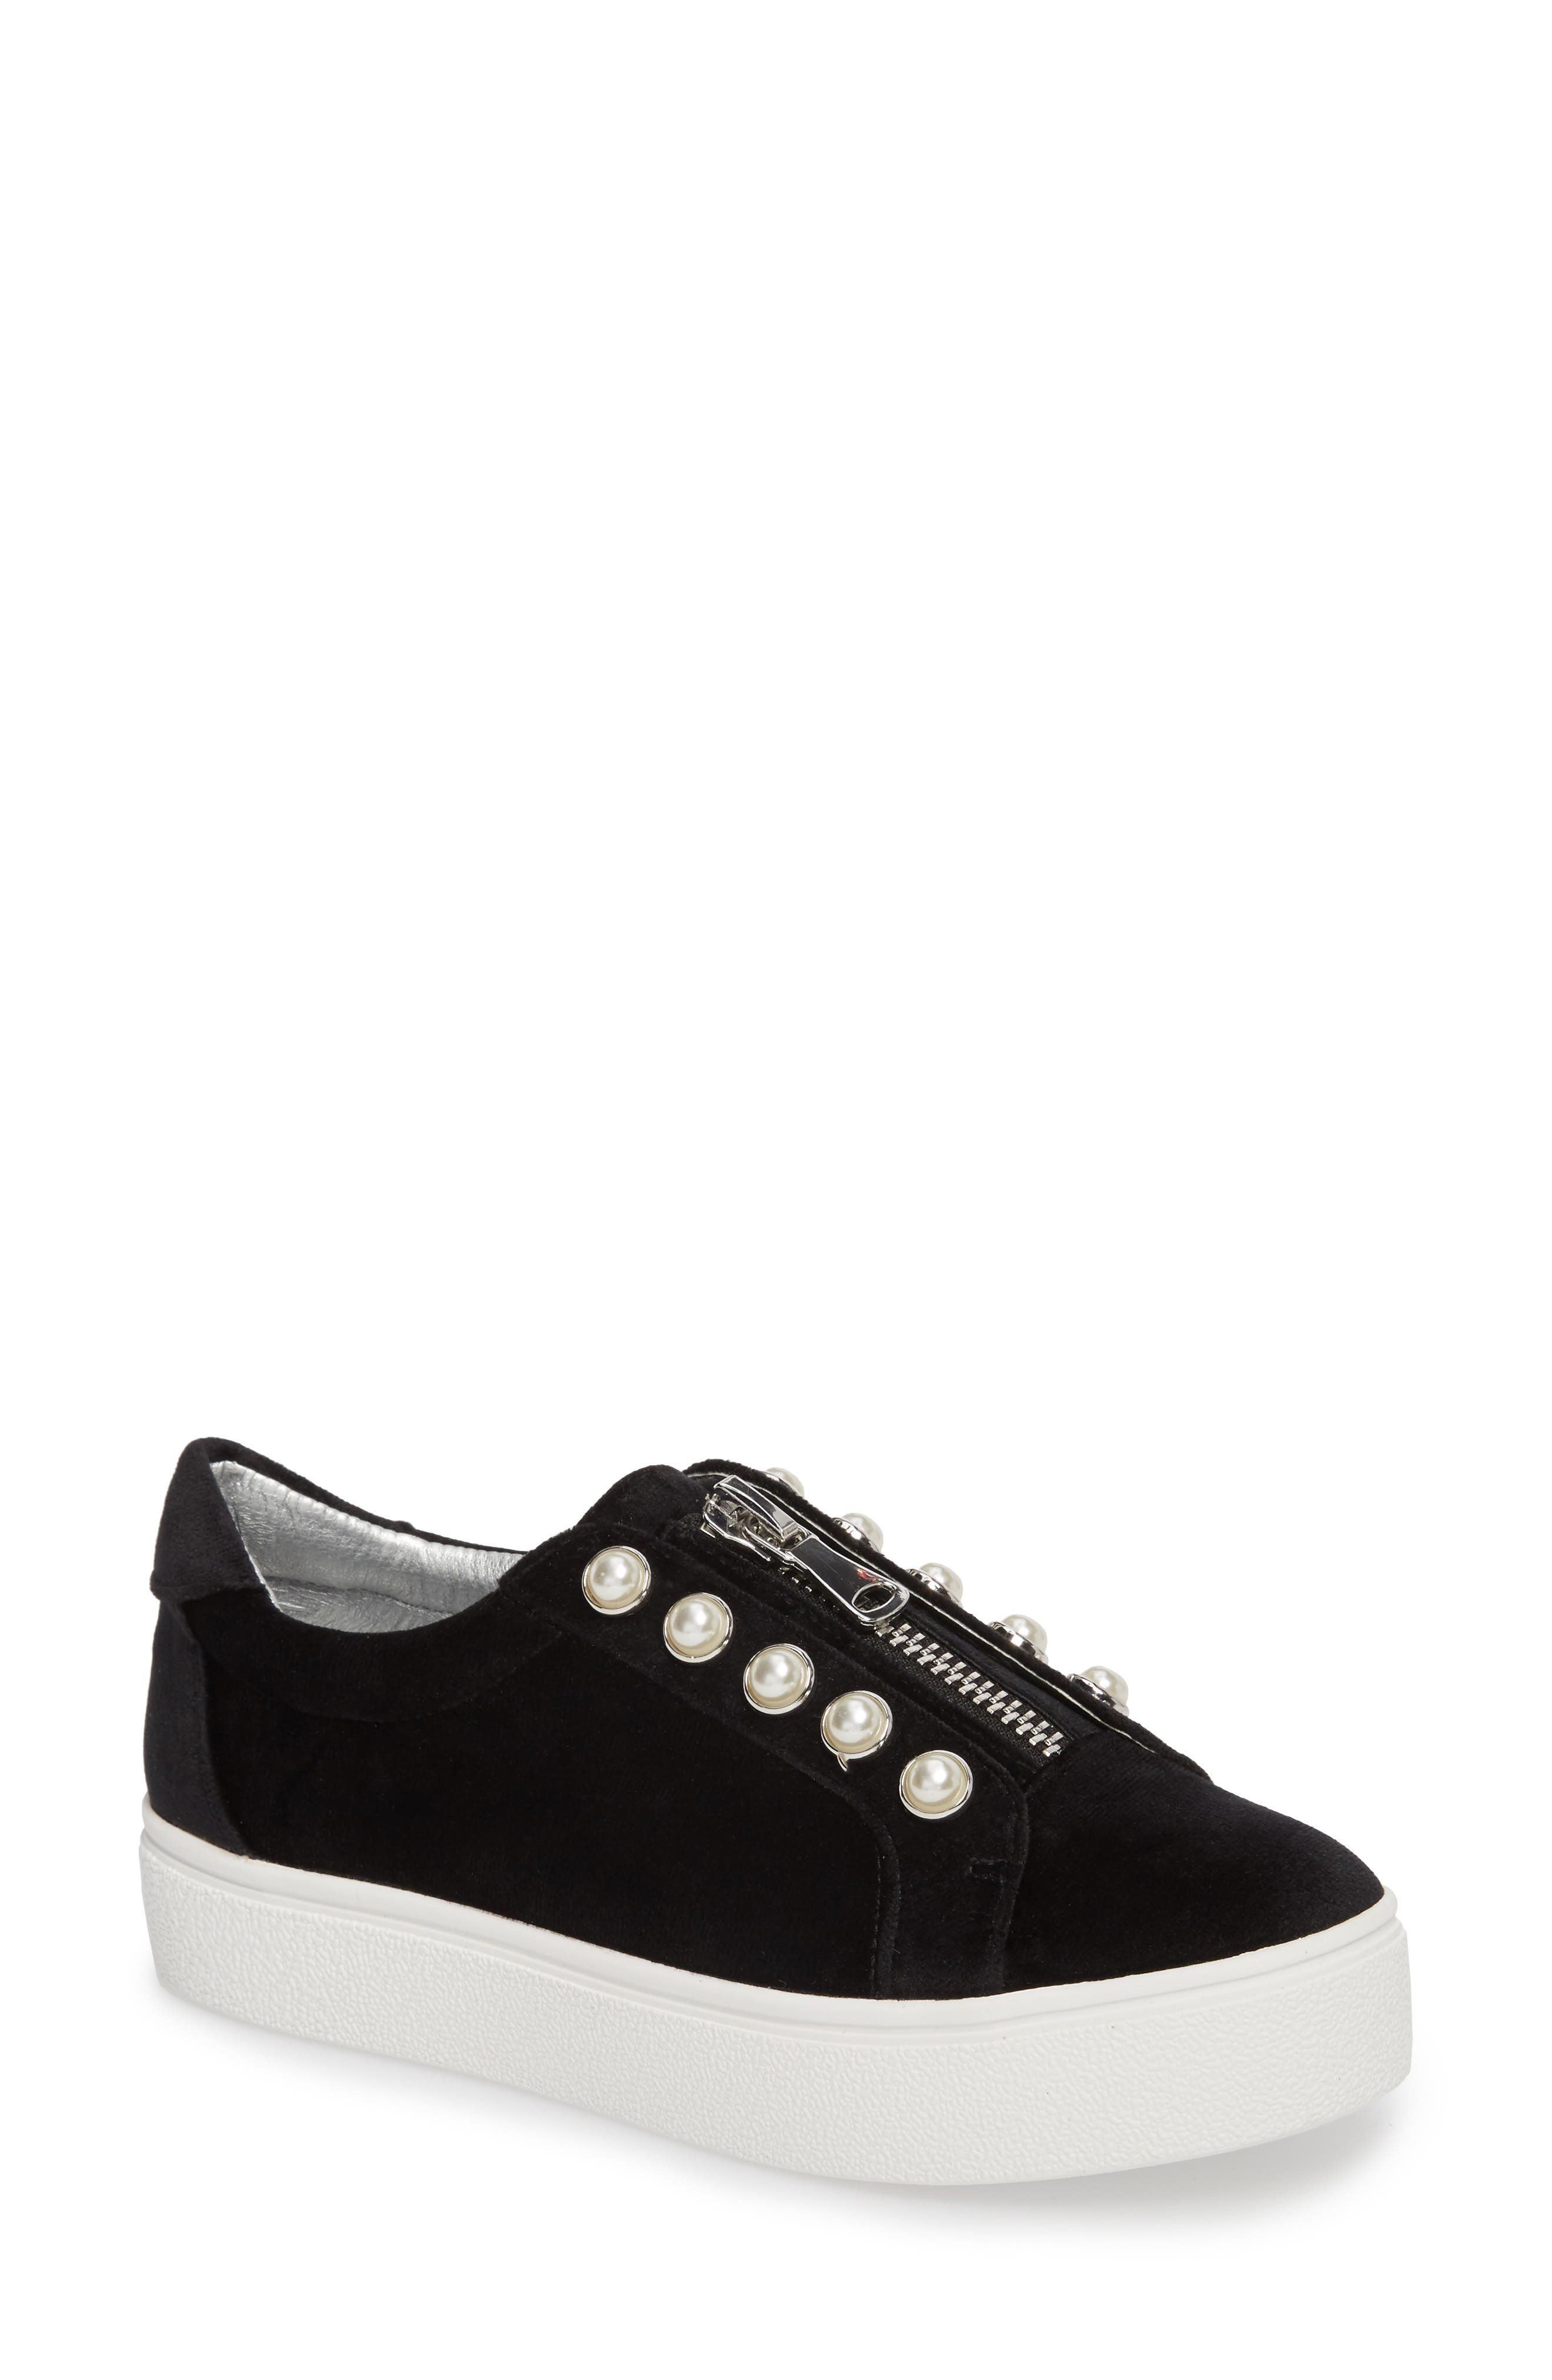 Lynn Embellished Platform Sneaker,                         Main,                         color, 001